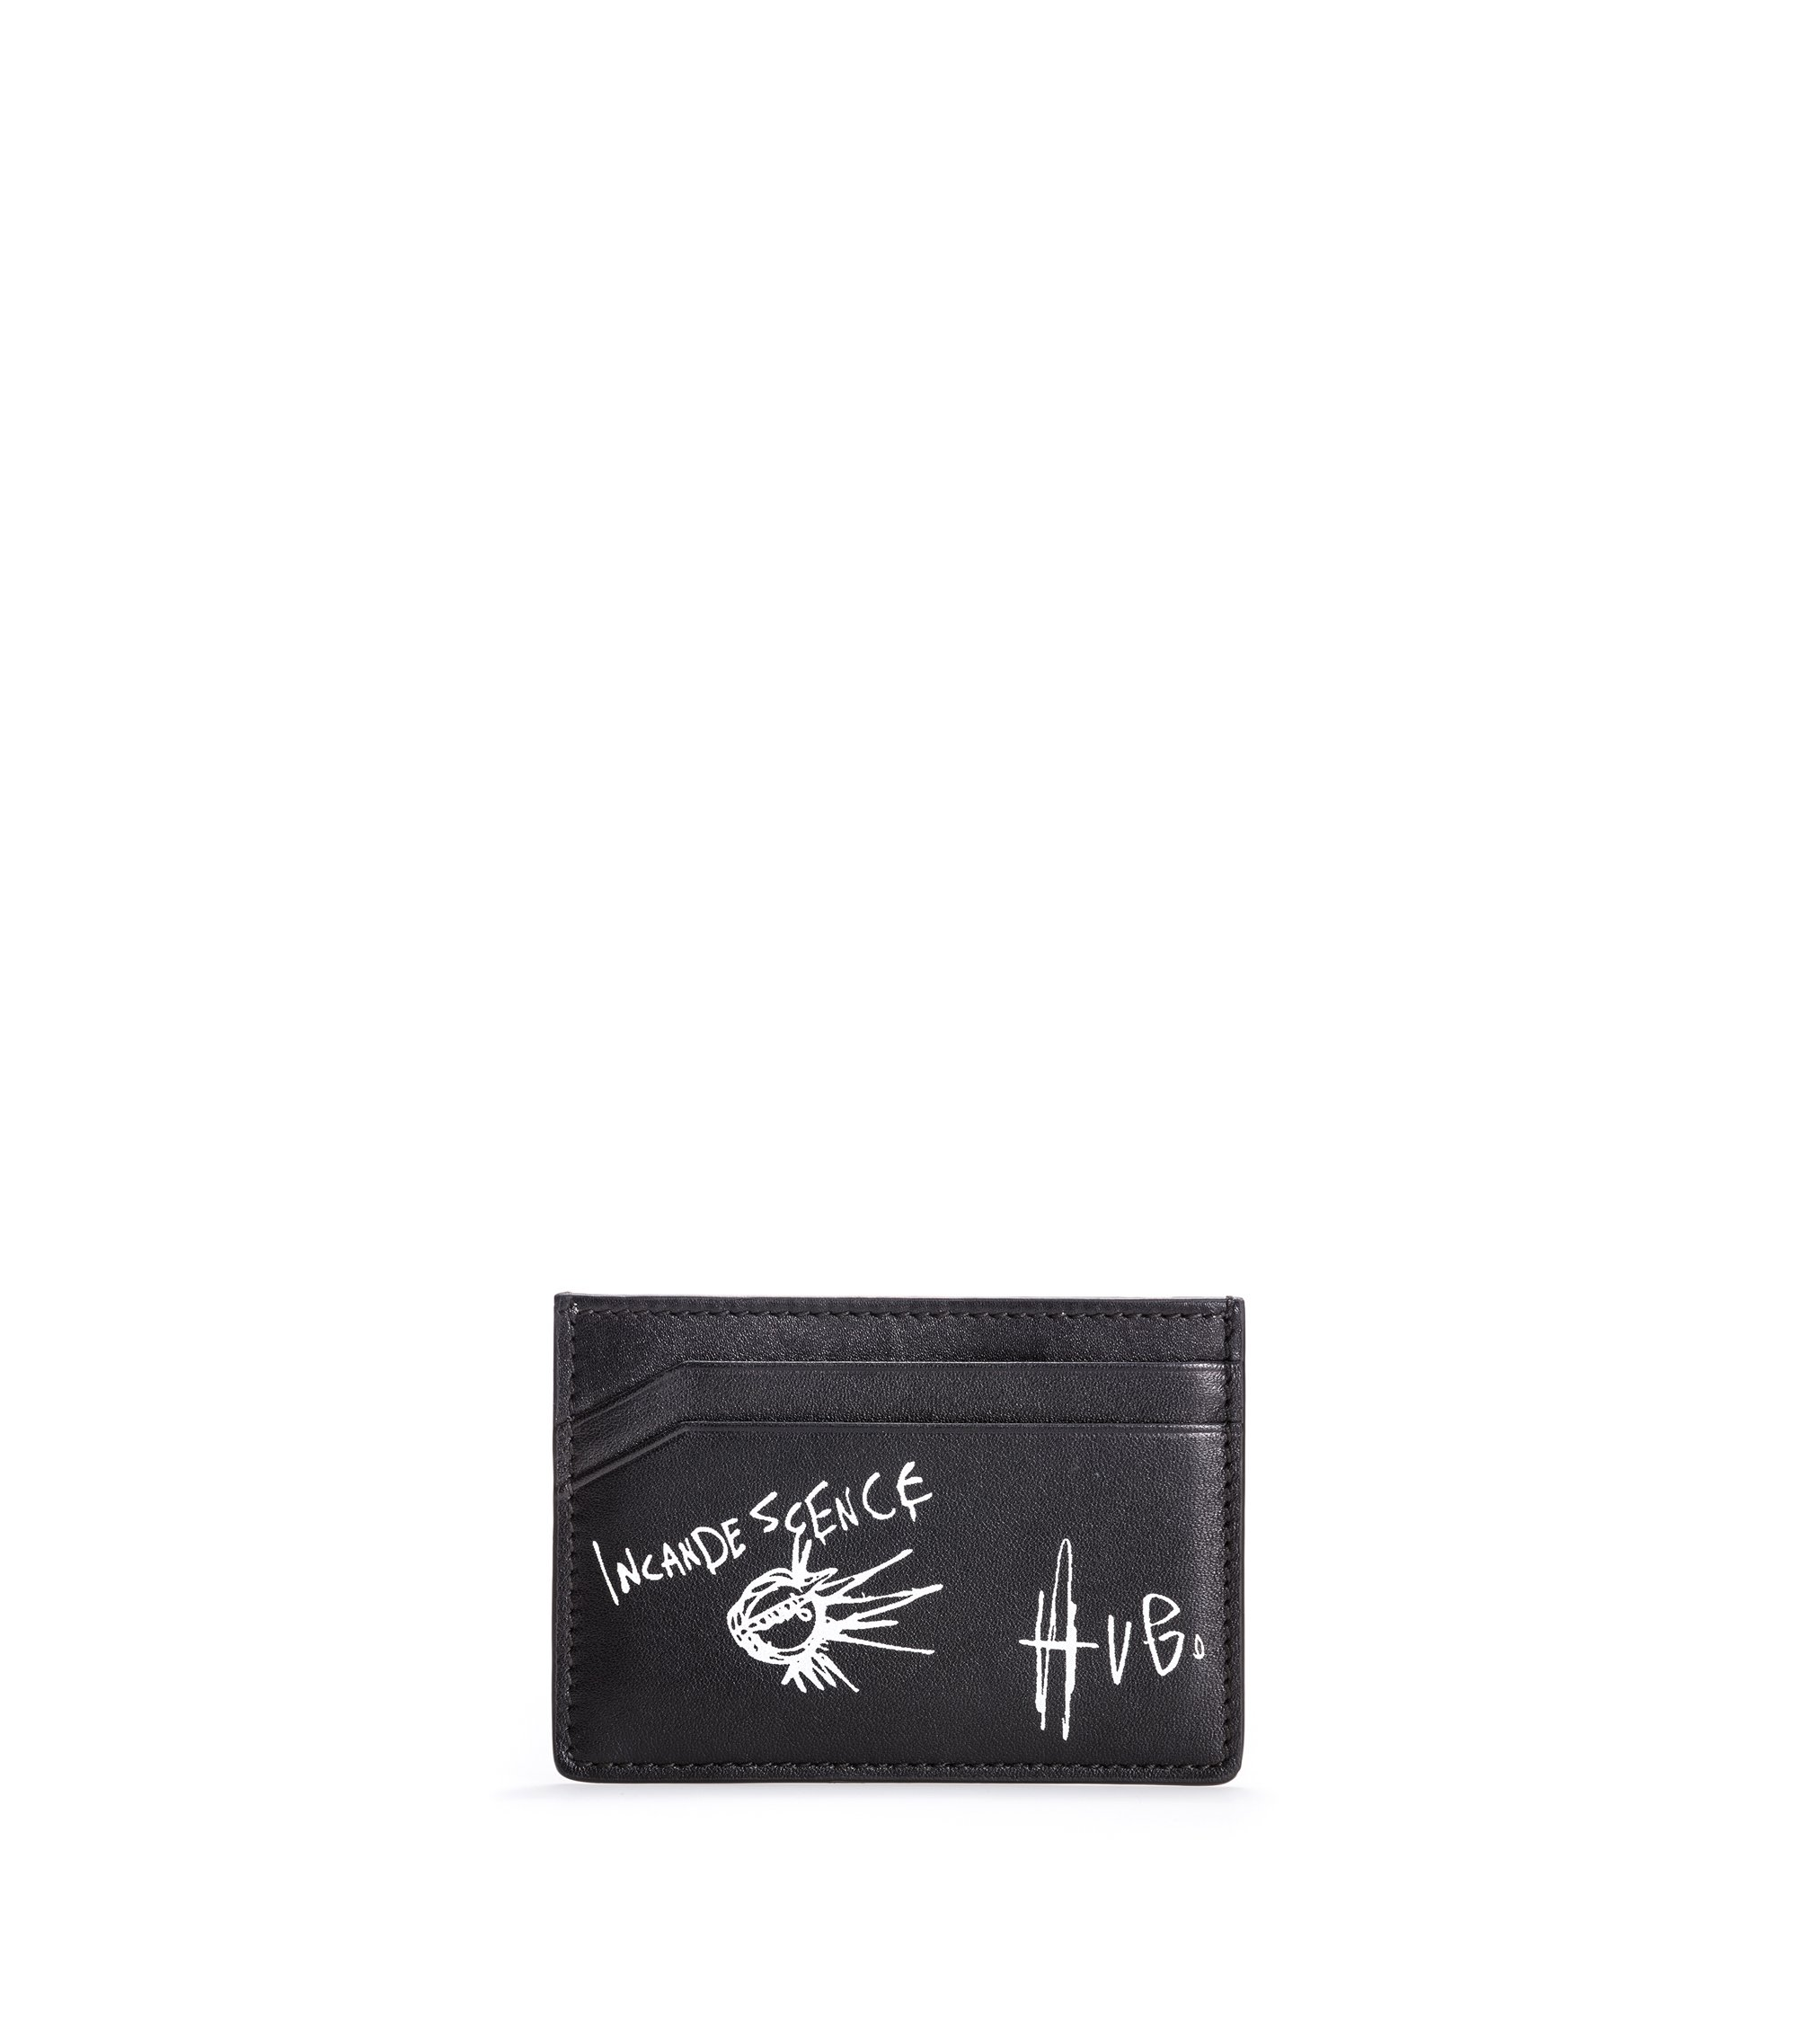 Leather card case with graffiti artwork, Black